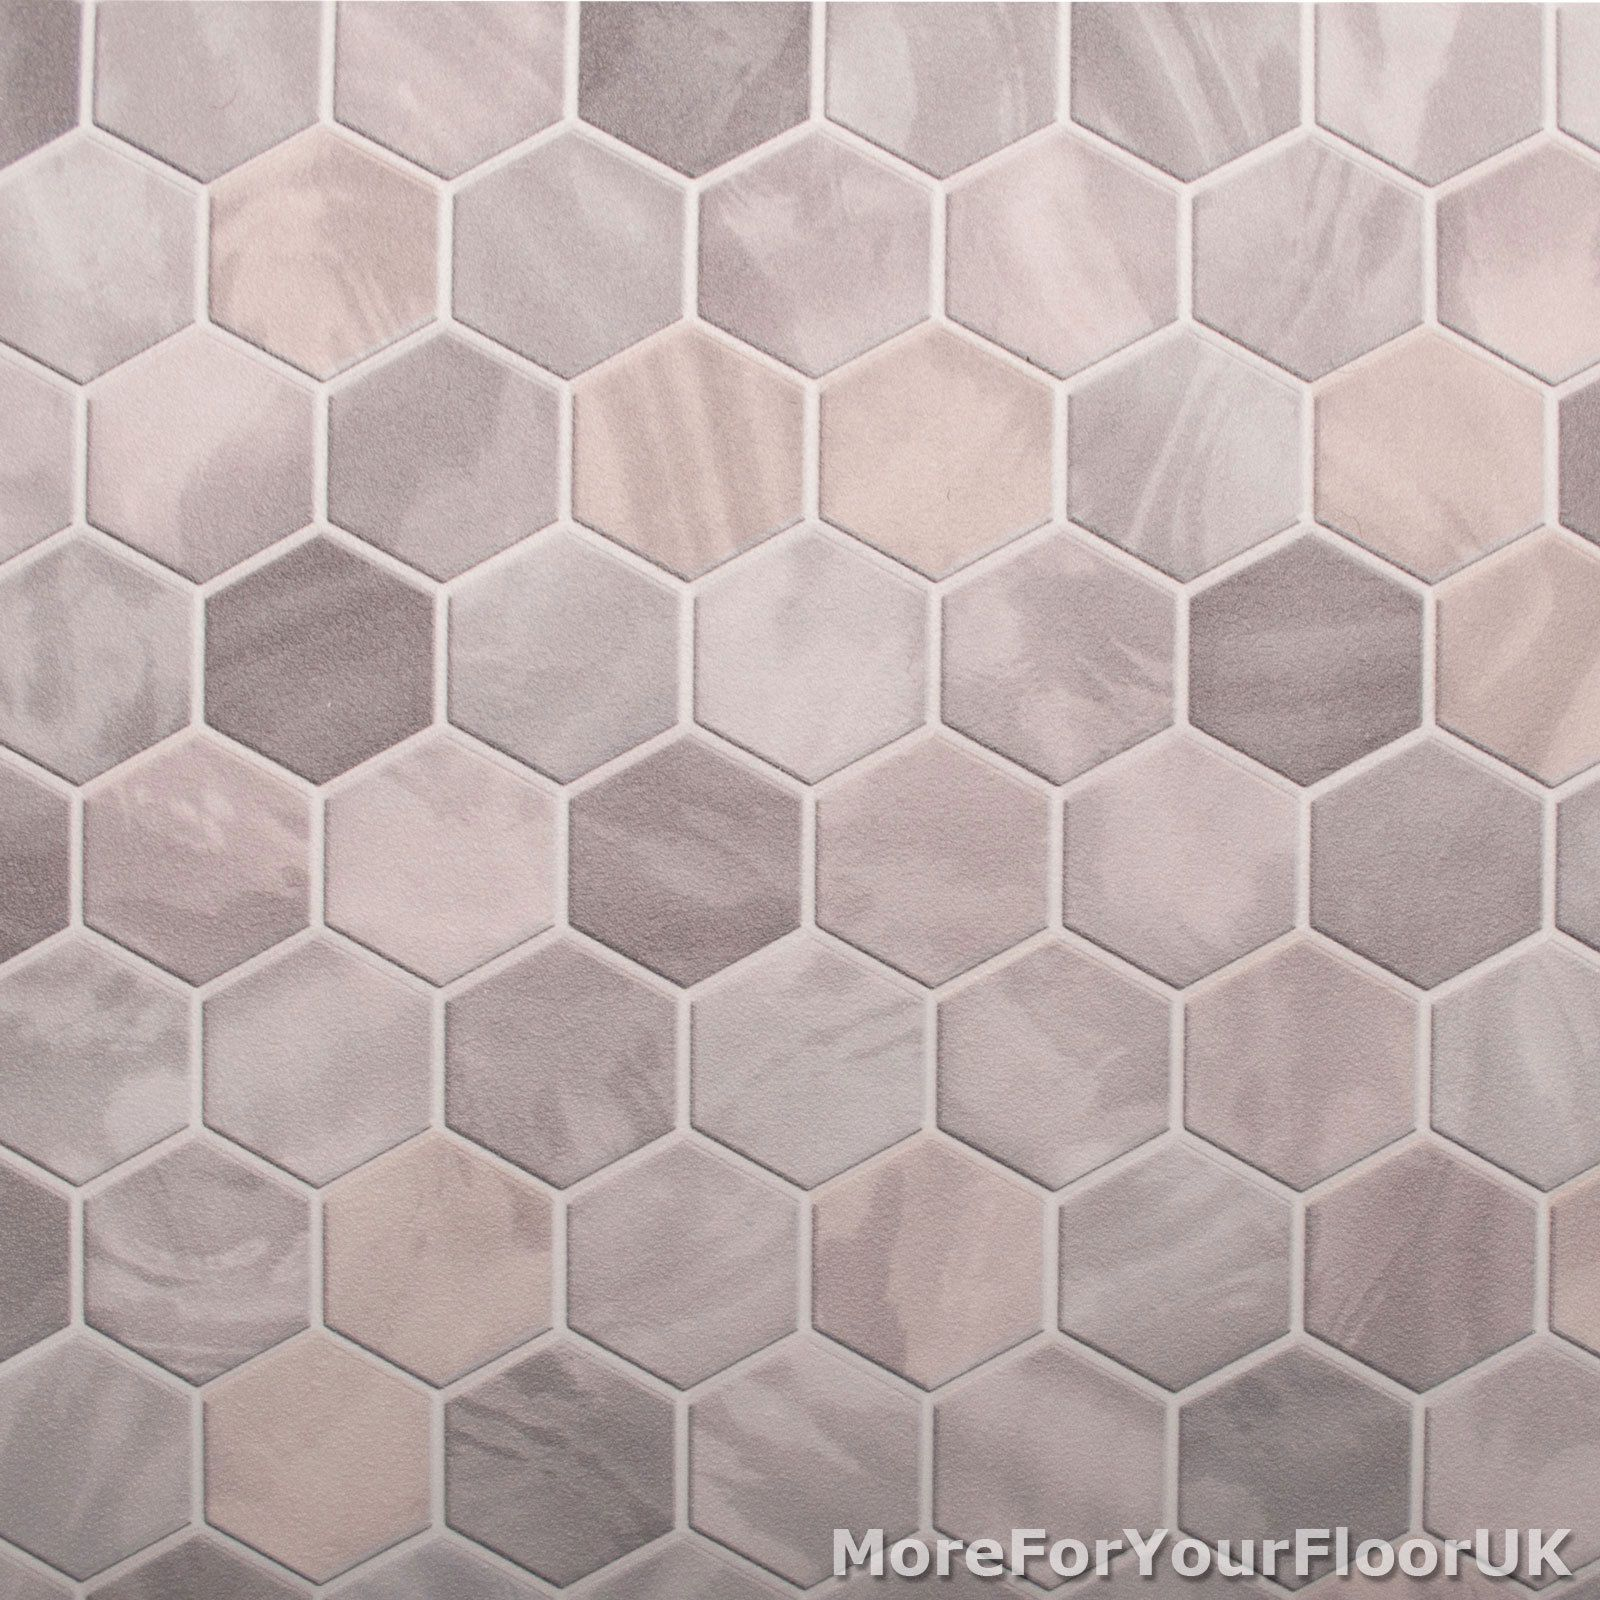 Mm Thick Vinyl Flooring Realistic Warm Grey Hexagon Tile Effect - Cheapest place to buy vinyl flooring